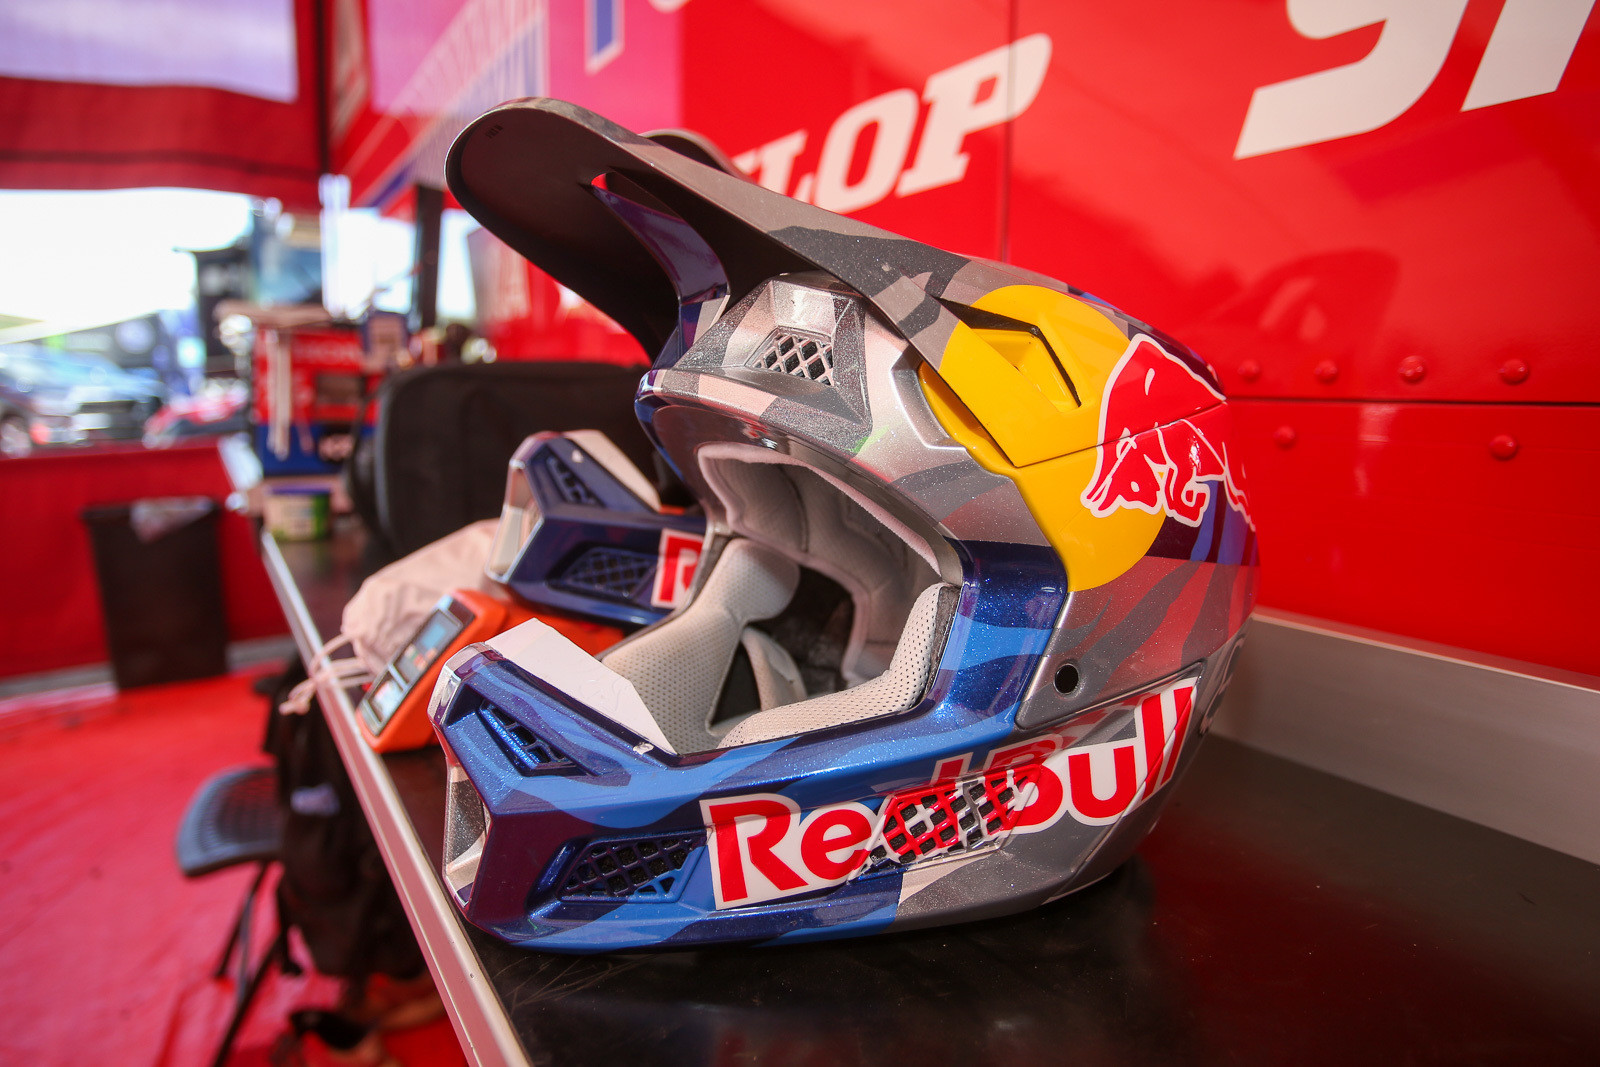 We love seeing custom-painted helmets, but when subjected to 450 roost, they don't stay pristine for too long. Kenny's lid is already showing some chips, and he's been running up front a lot. Imagine what it'd be like if he were spending more time back in the pack.